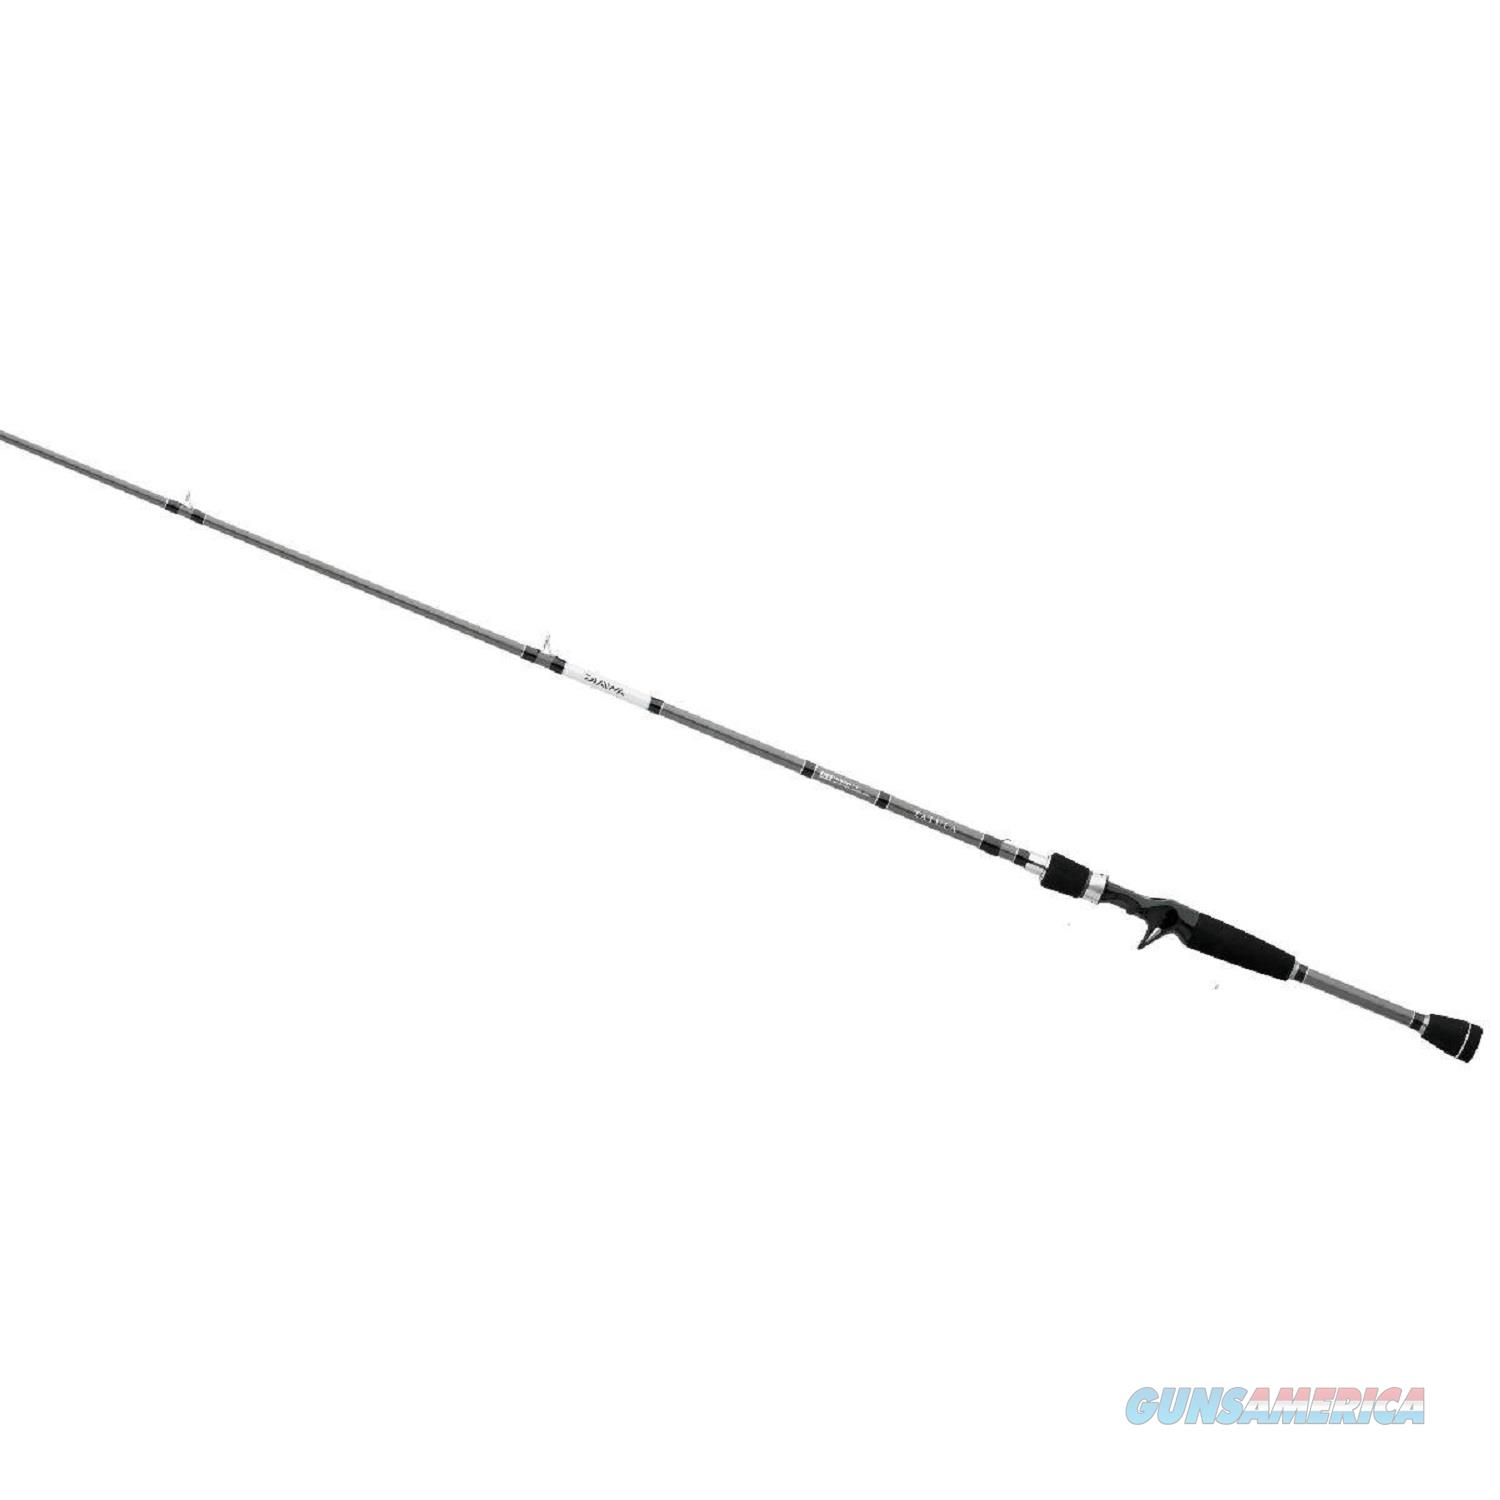 Daiwa Tatula Xt Rod 7 Ft One Piece Casting - Medium Action TXT701MFB  Non-Guns > Fishing/Spearfishing